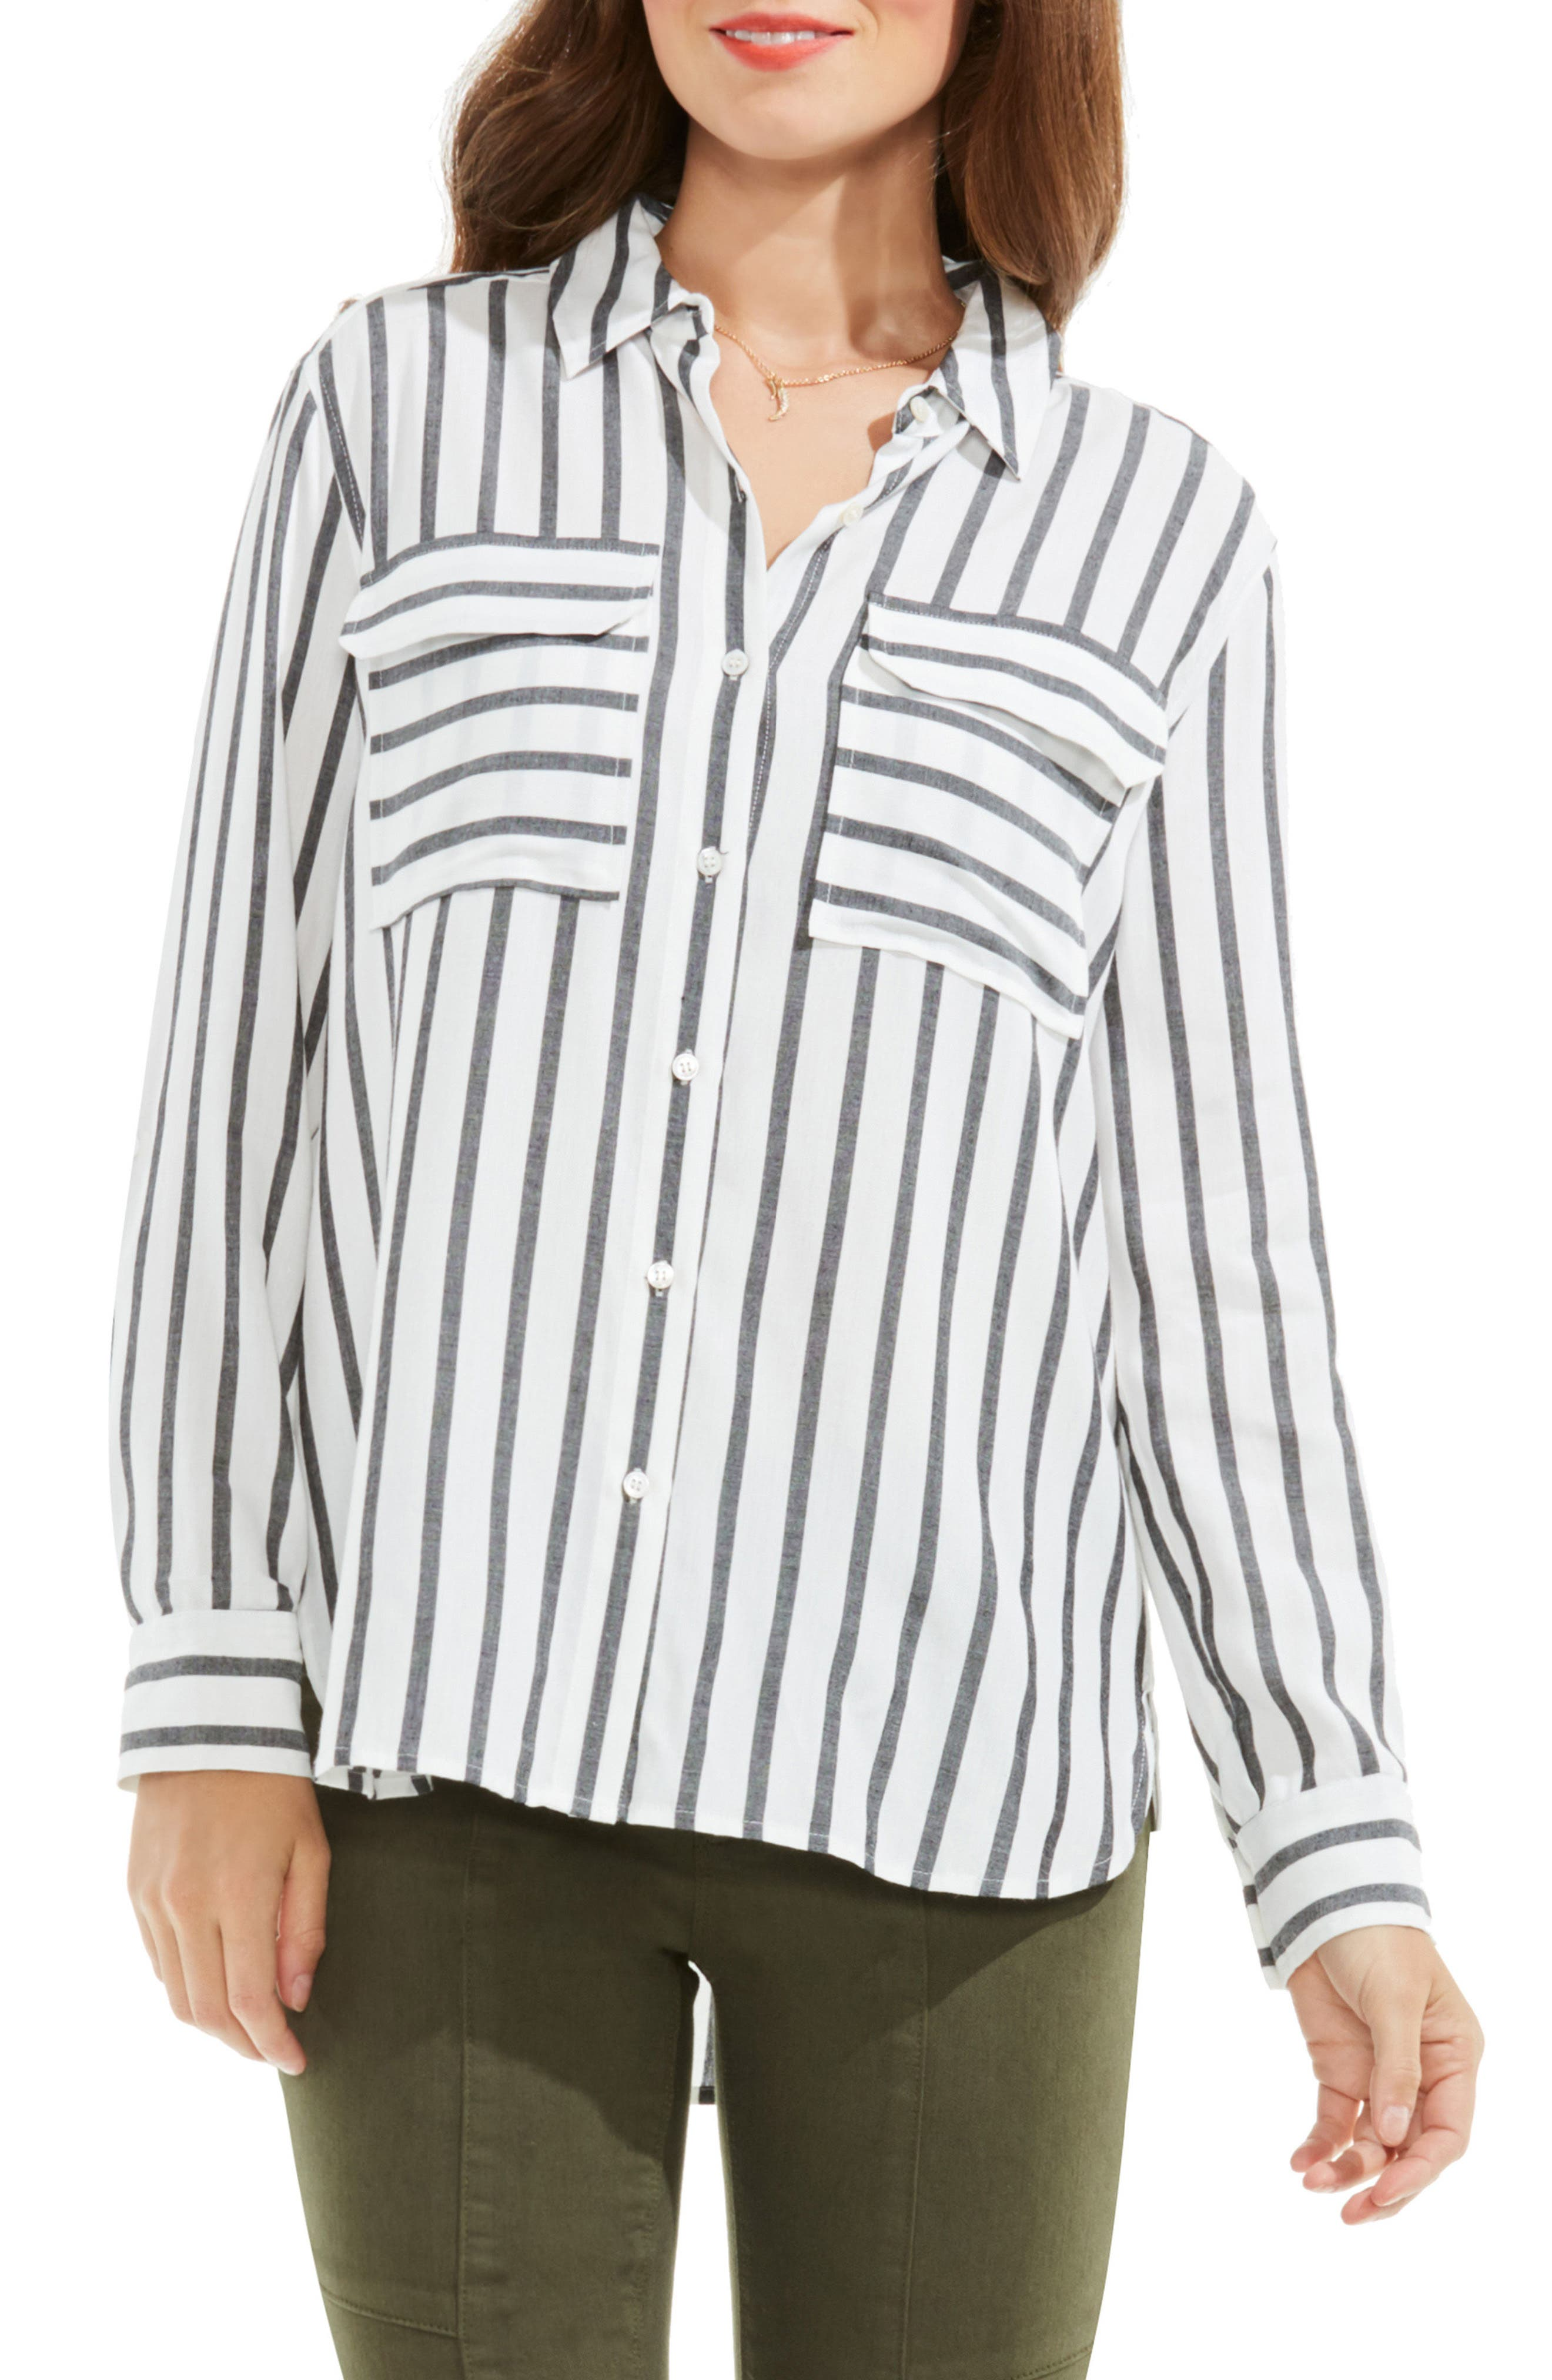 Alternate Image 1 Selected - Two by Vince Camuto Stripe Utility Shirt